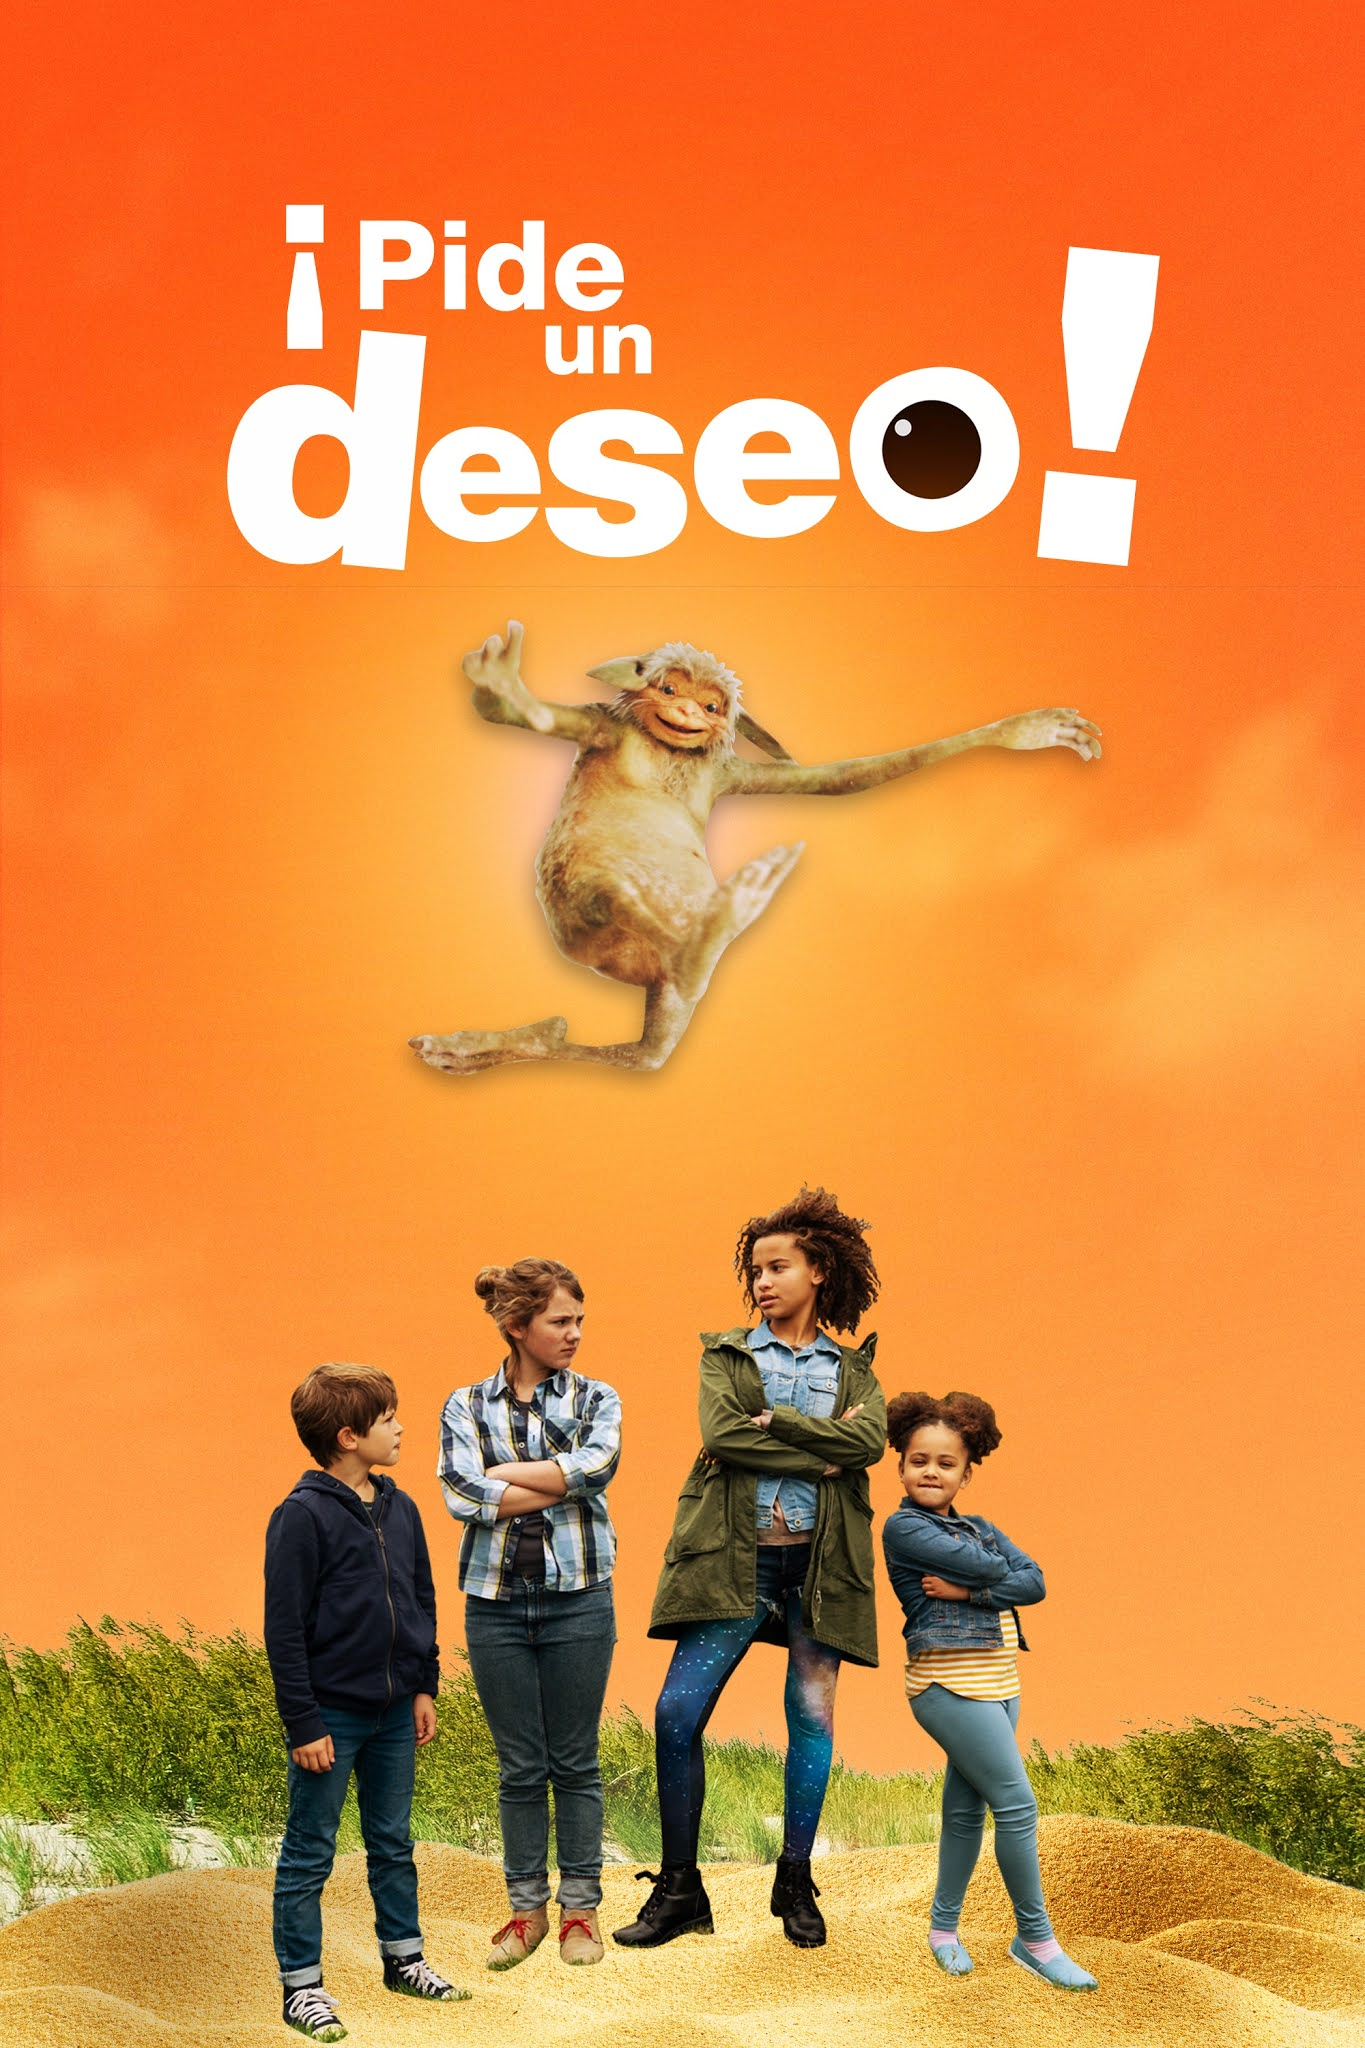 ¡Pide un deseo! (2020) PLACEBO Full HD 1080p Latino